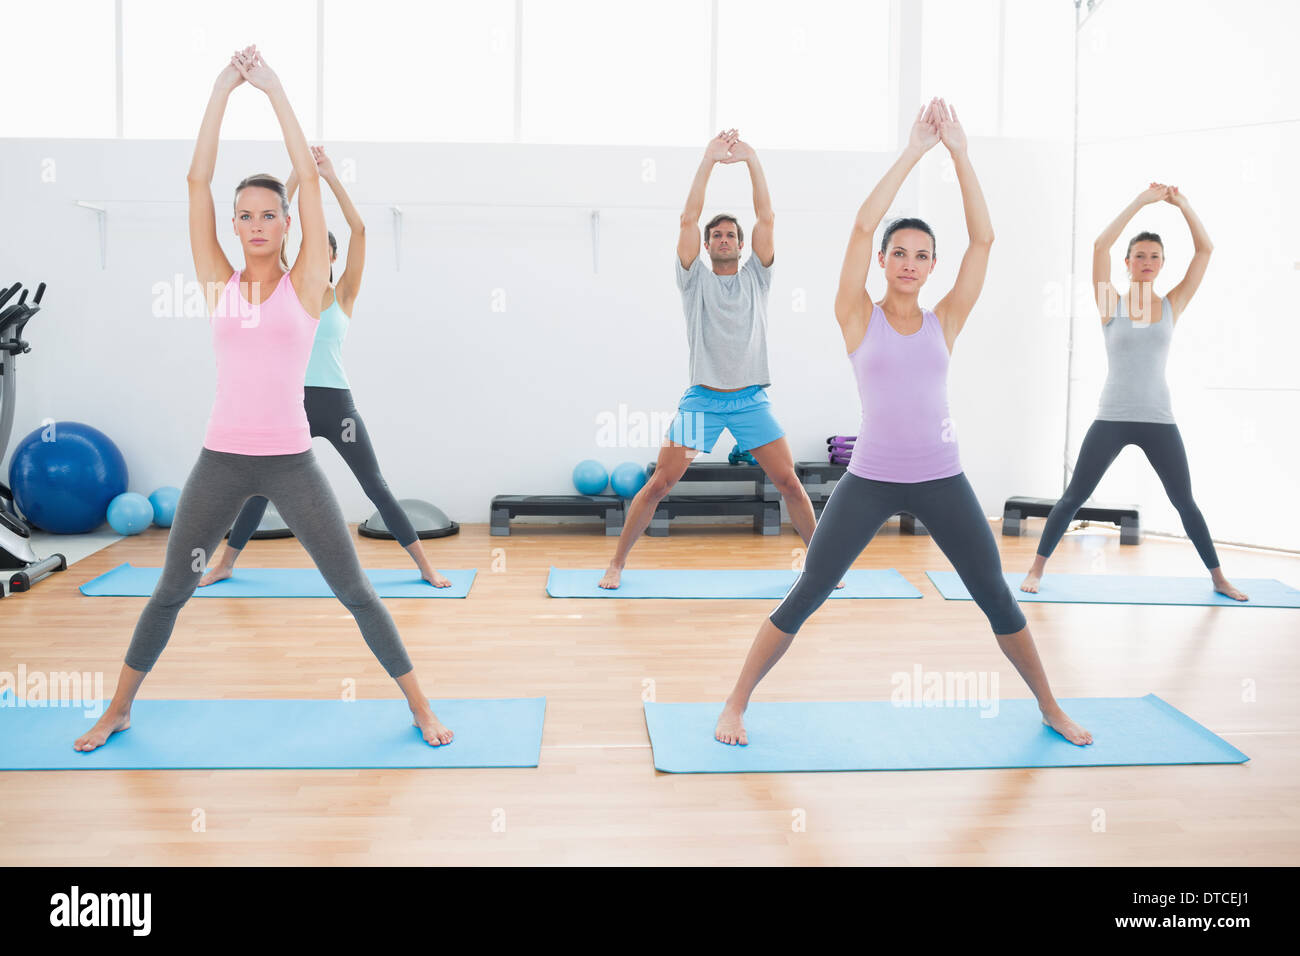 Class doing pilate exercises in fitness studio - Stock Image